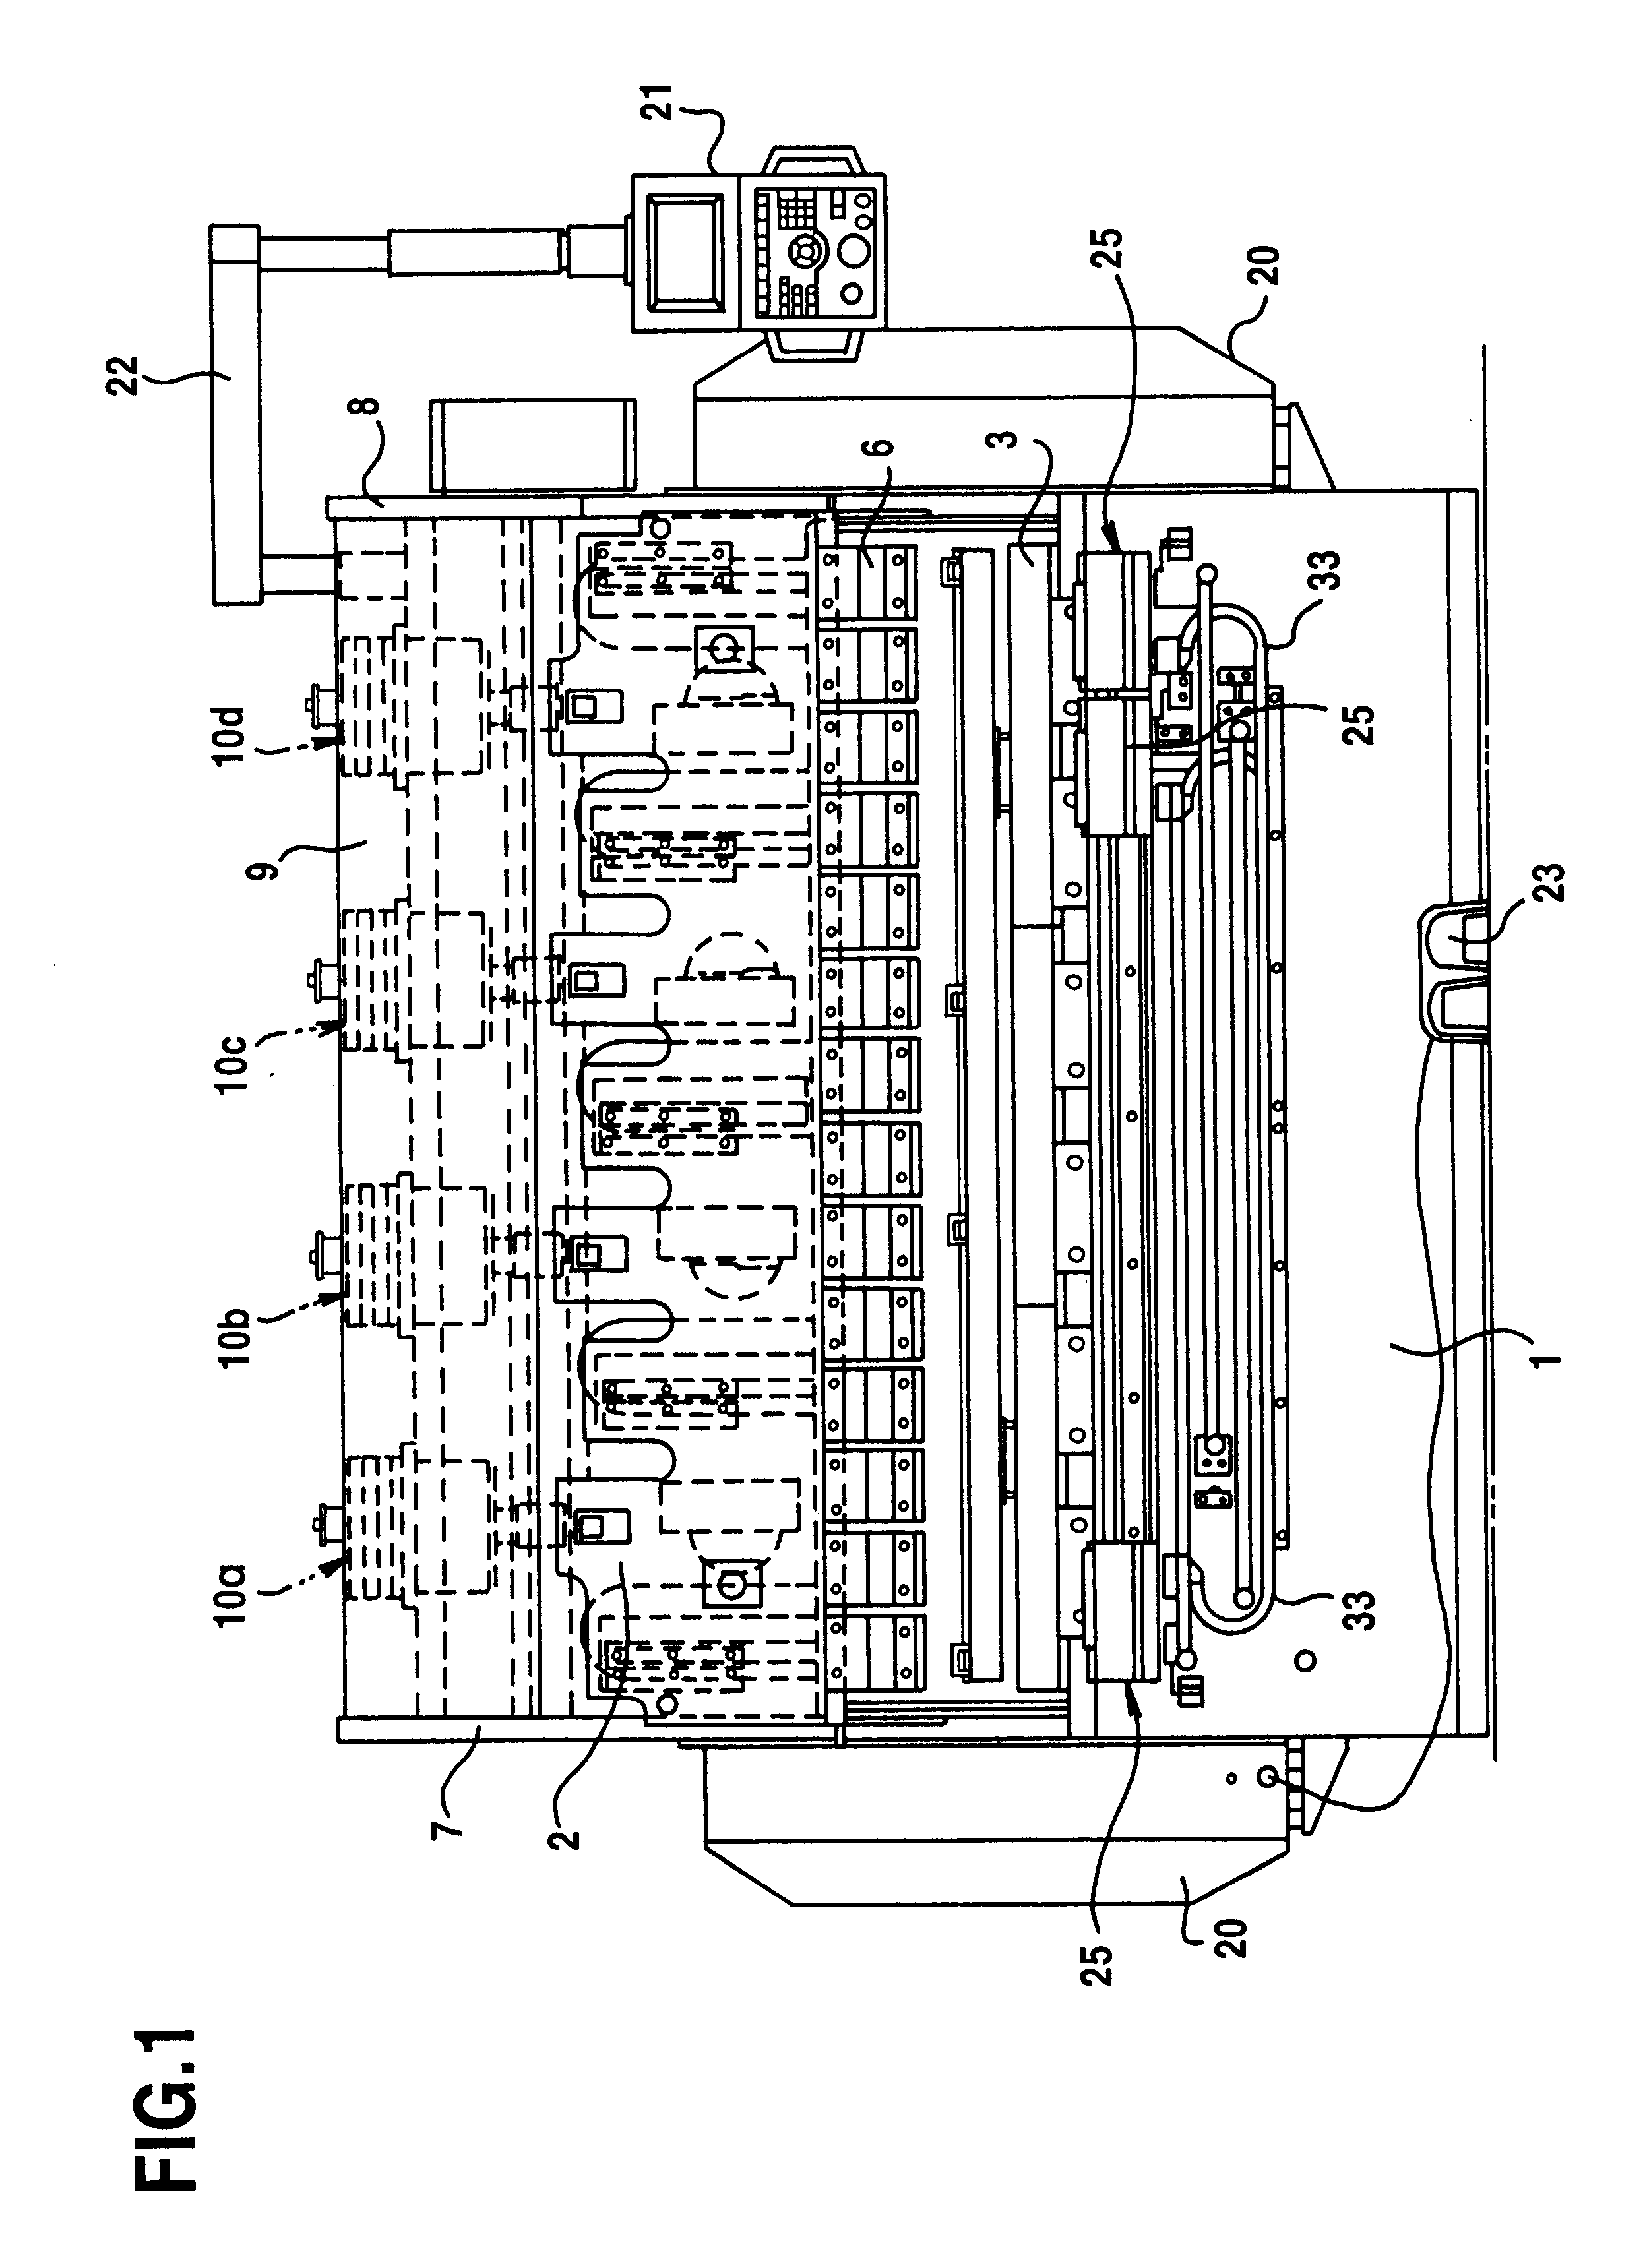 99 galant engine diagram